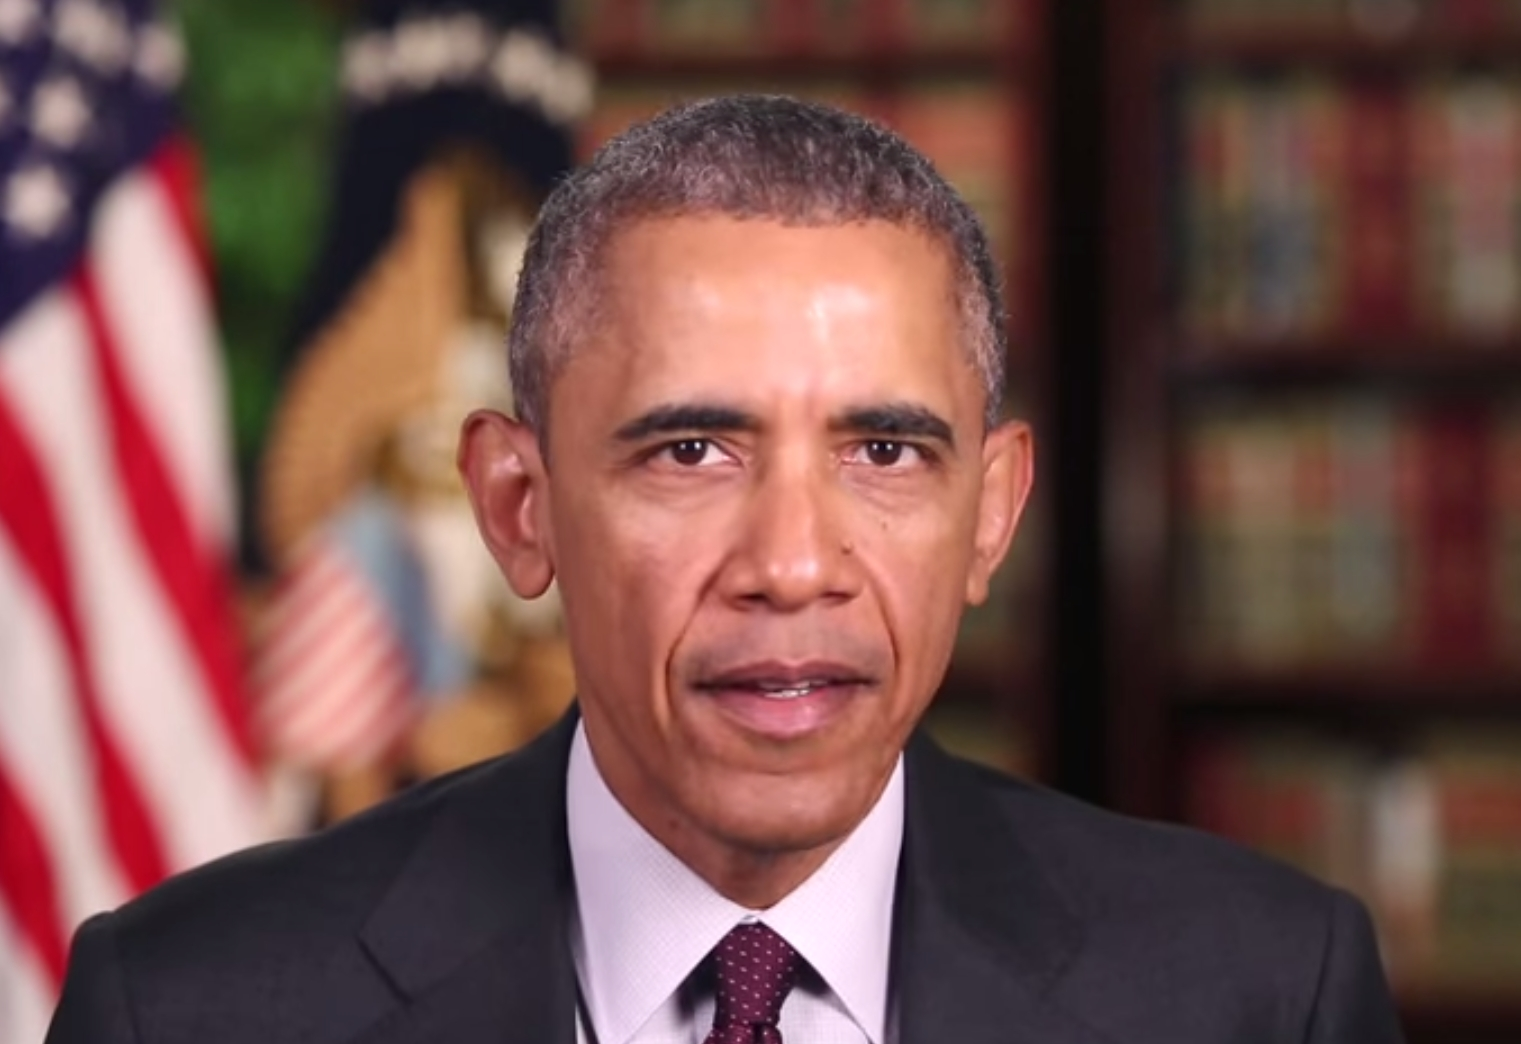 President Obama addressing the Iranian Nuclear agreement in his weekly address from the White House